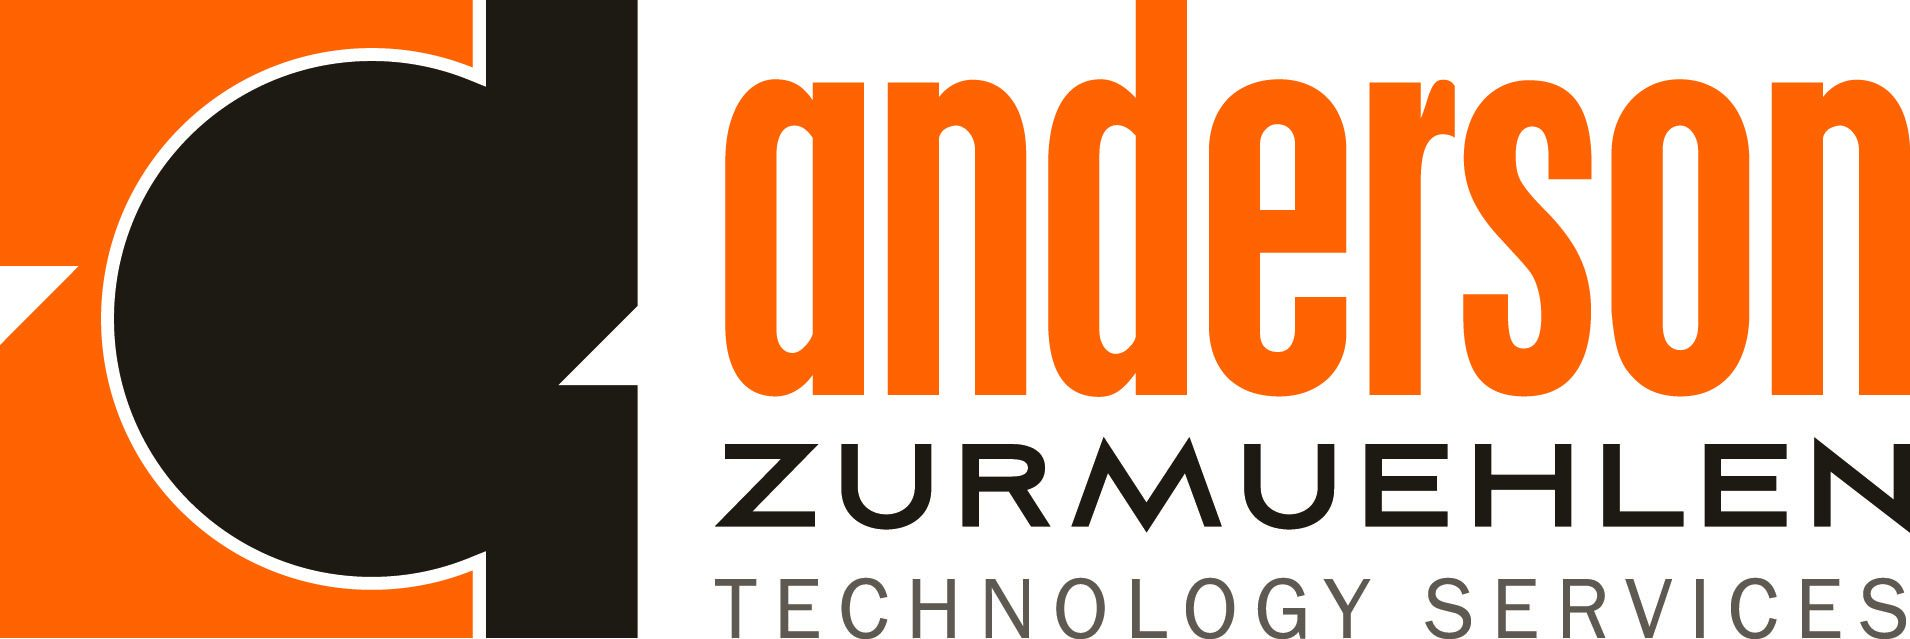 Anderson ZurMuehlen Technology Services